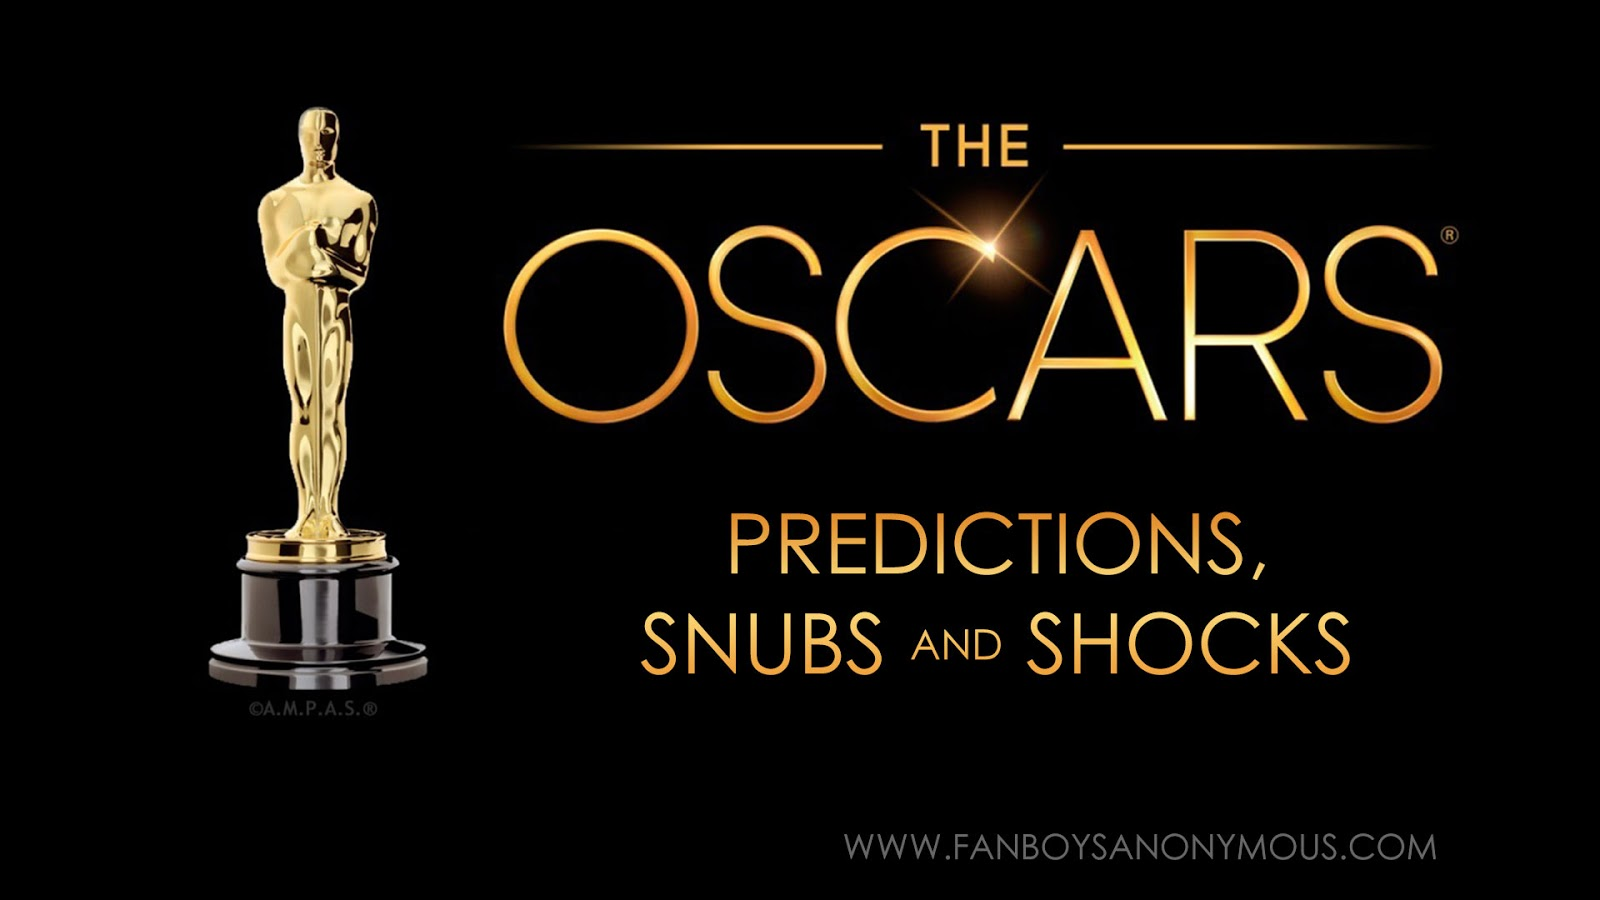 2017 Academy Awards snubs 89th Oscars predictions